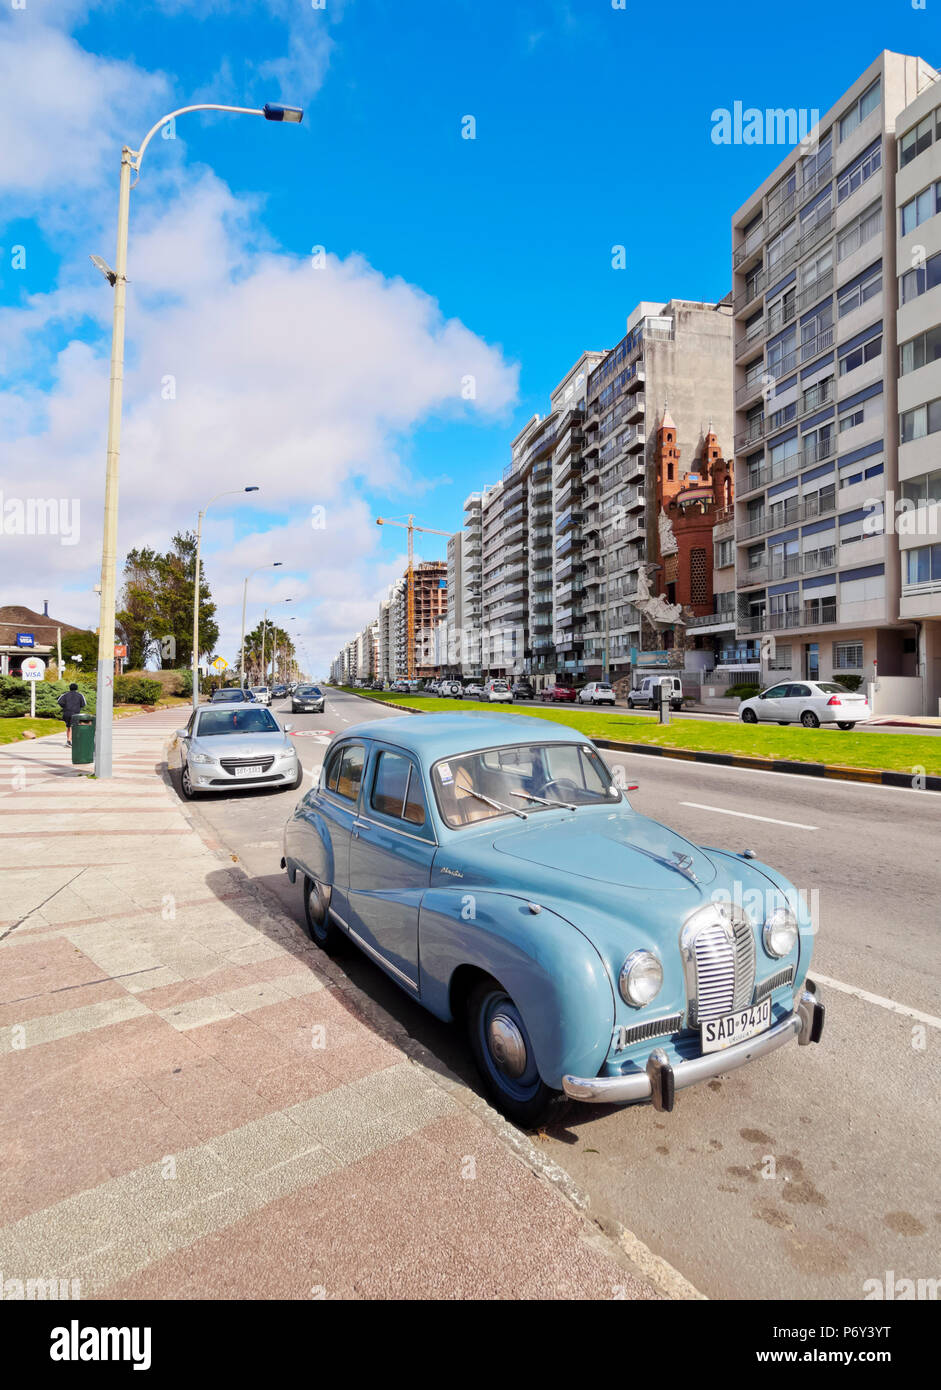 Uruguay, Montevideo, Vintage car parked by the Rambla. - Stock Image